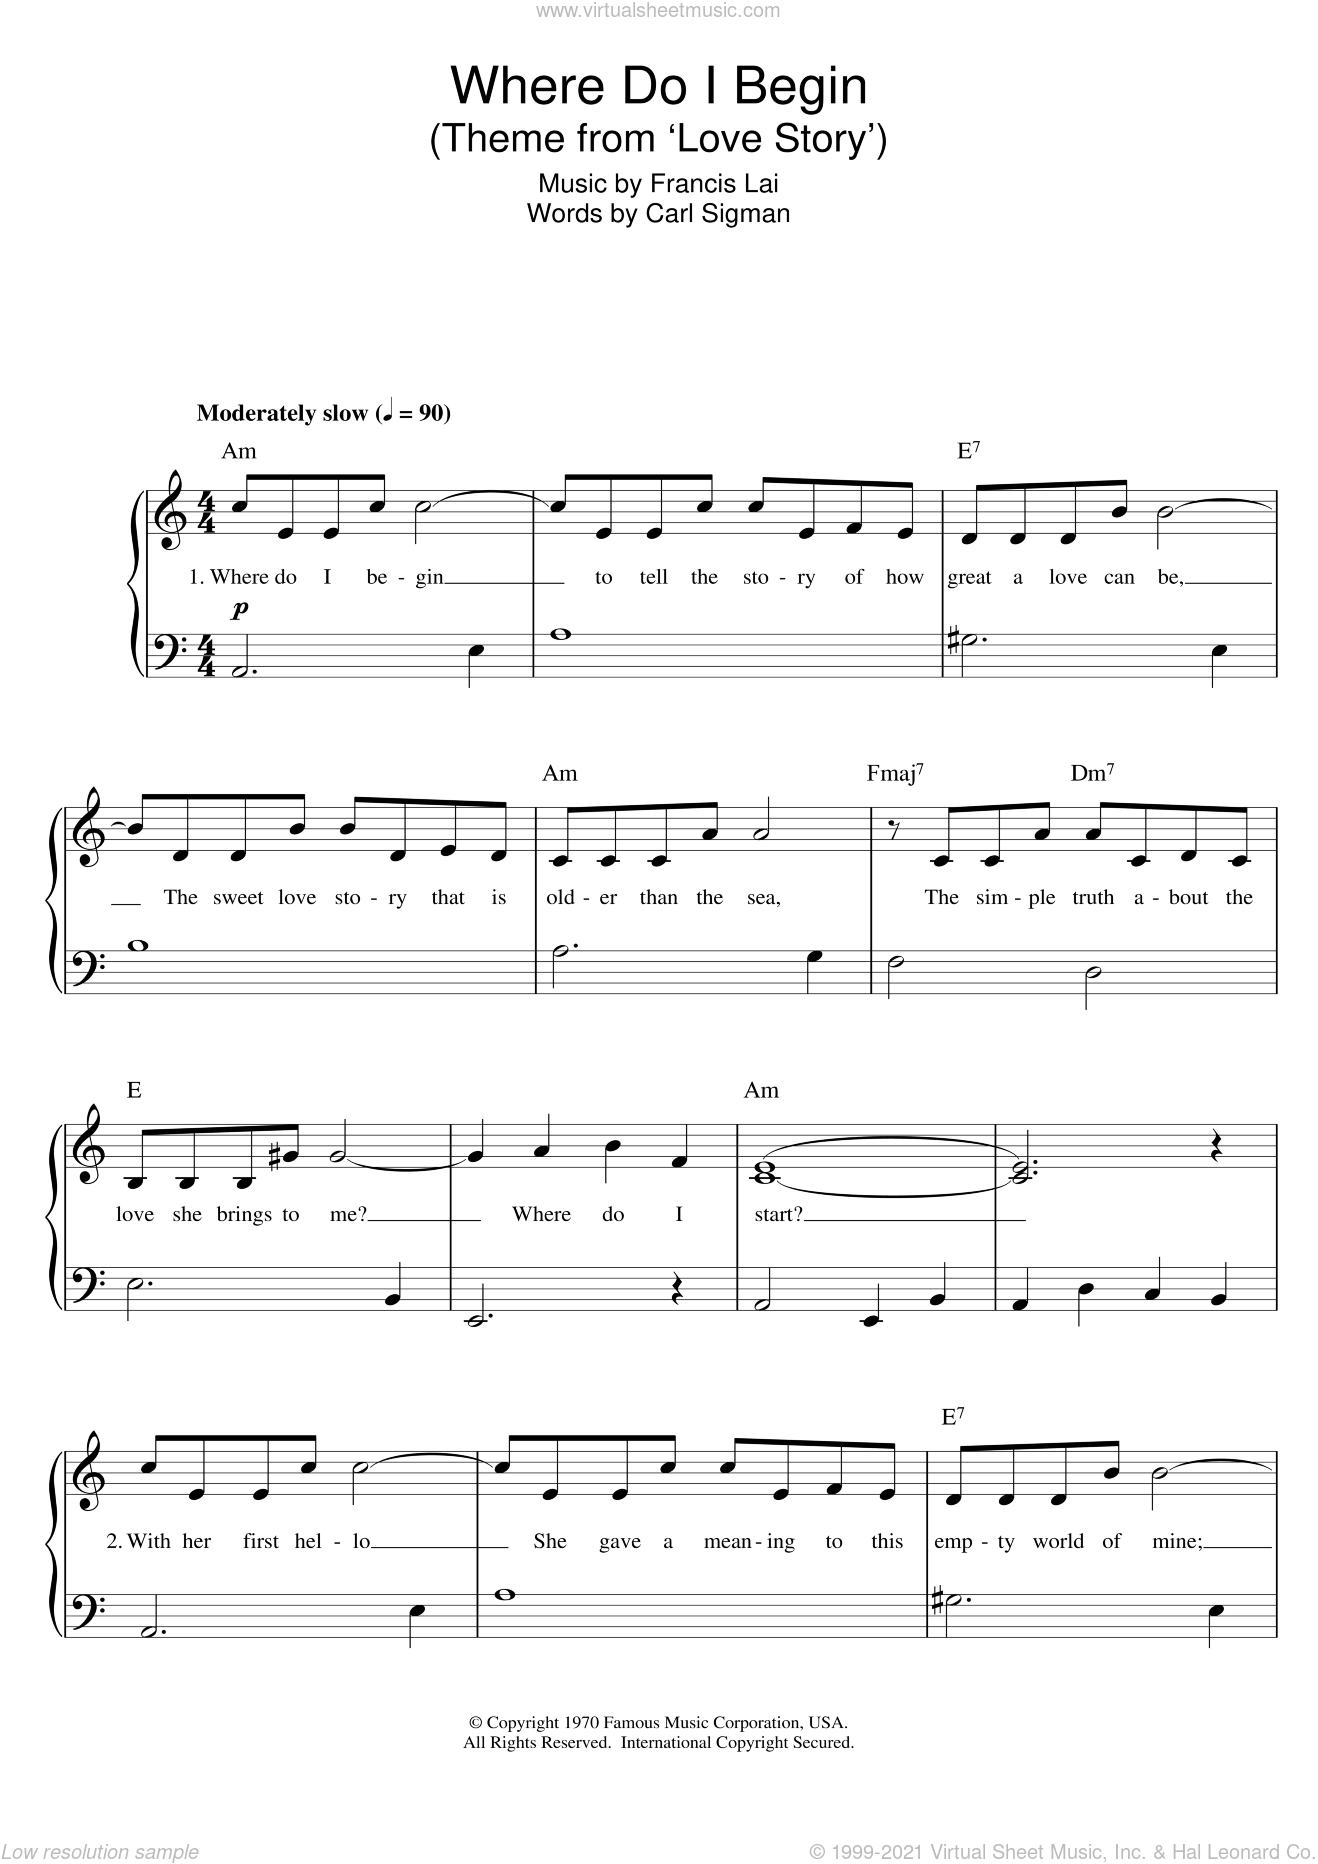 Where Do I Begin sheet music for piano solo by Francis Lai, C Sigman, Carl Sigman and Francis Lai And Carl Sigman, classical score, intermediate skill level